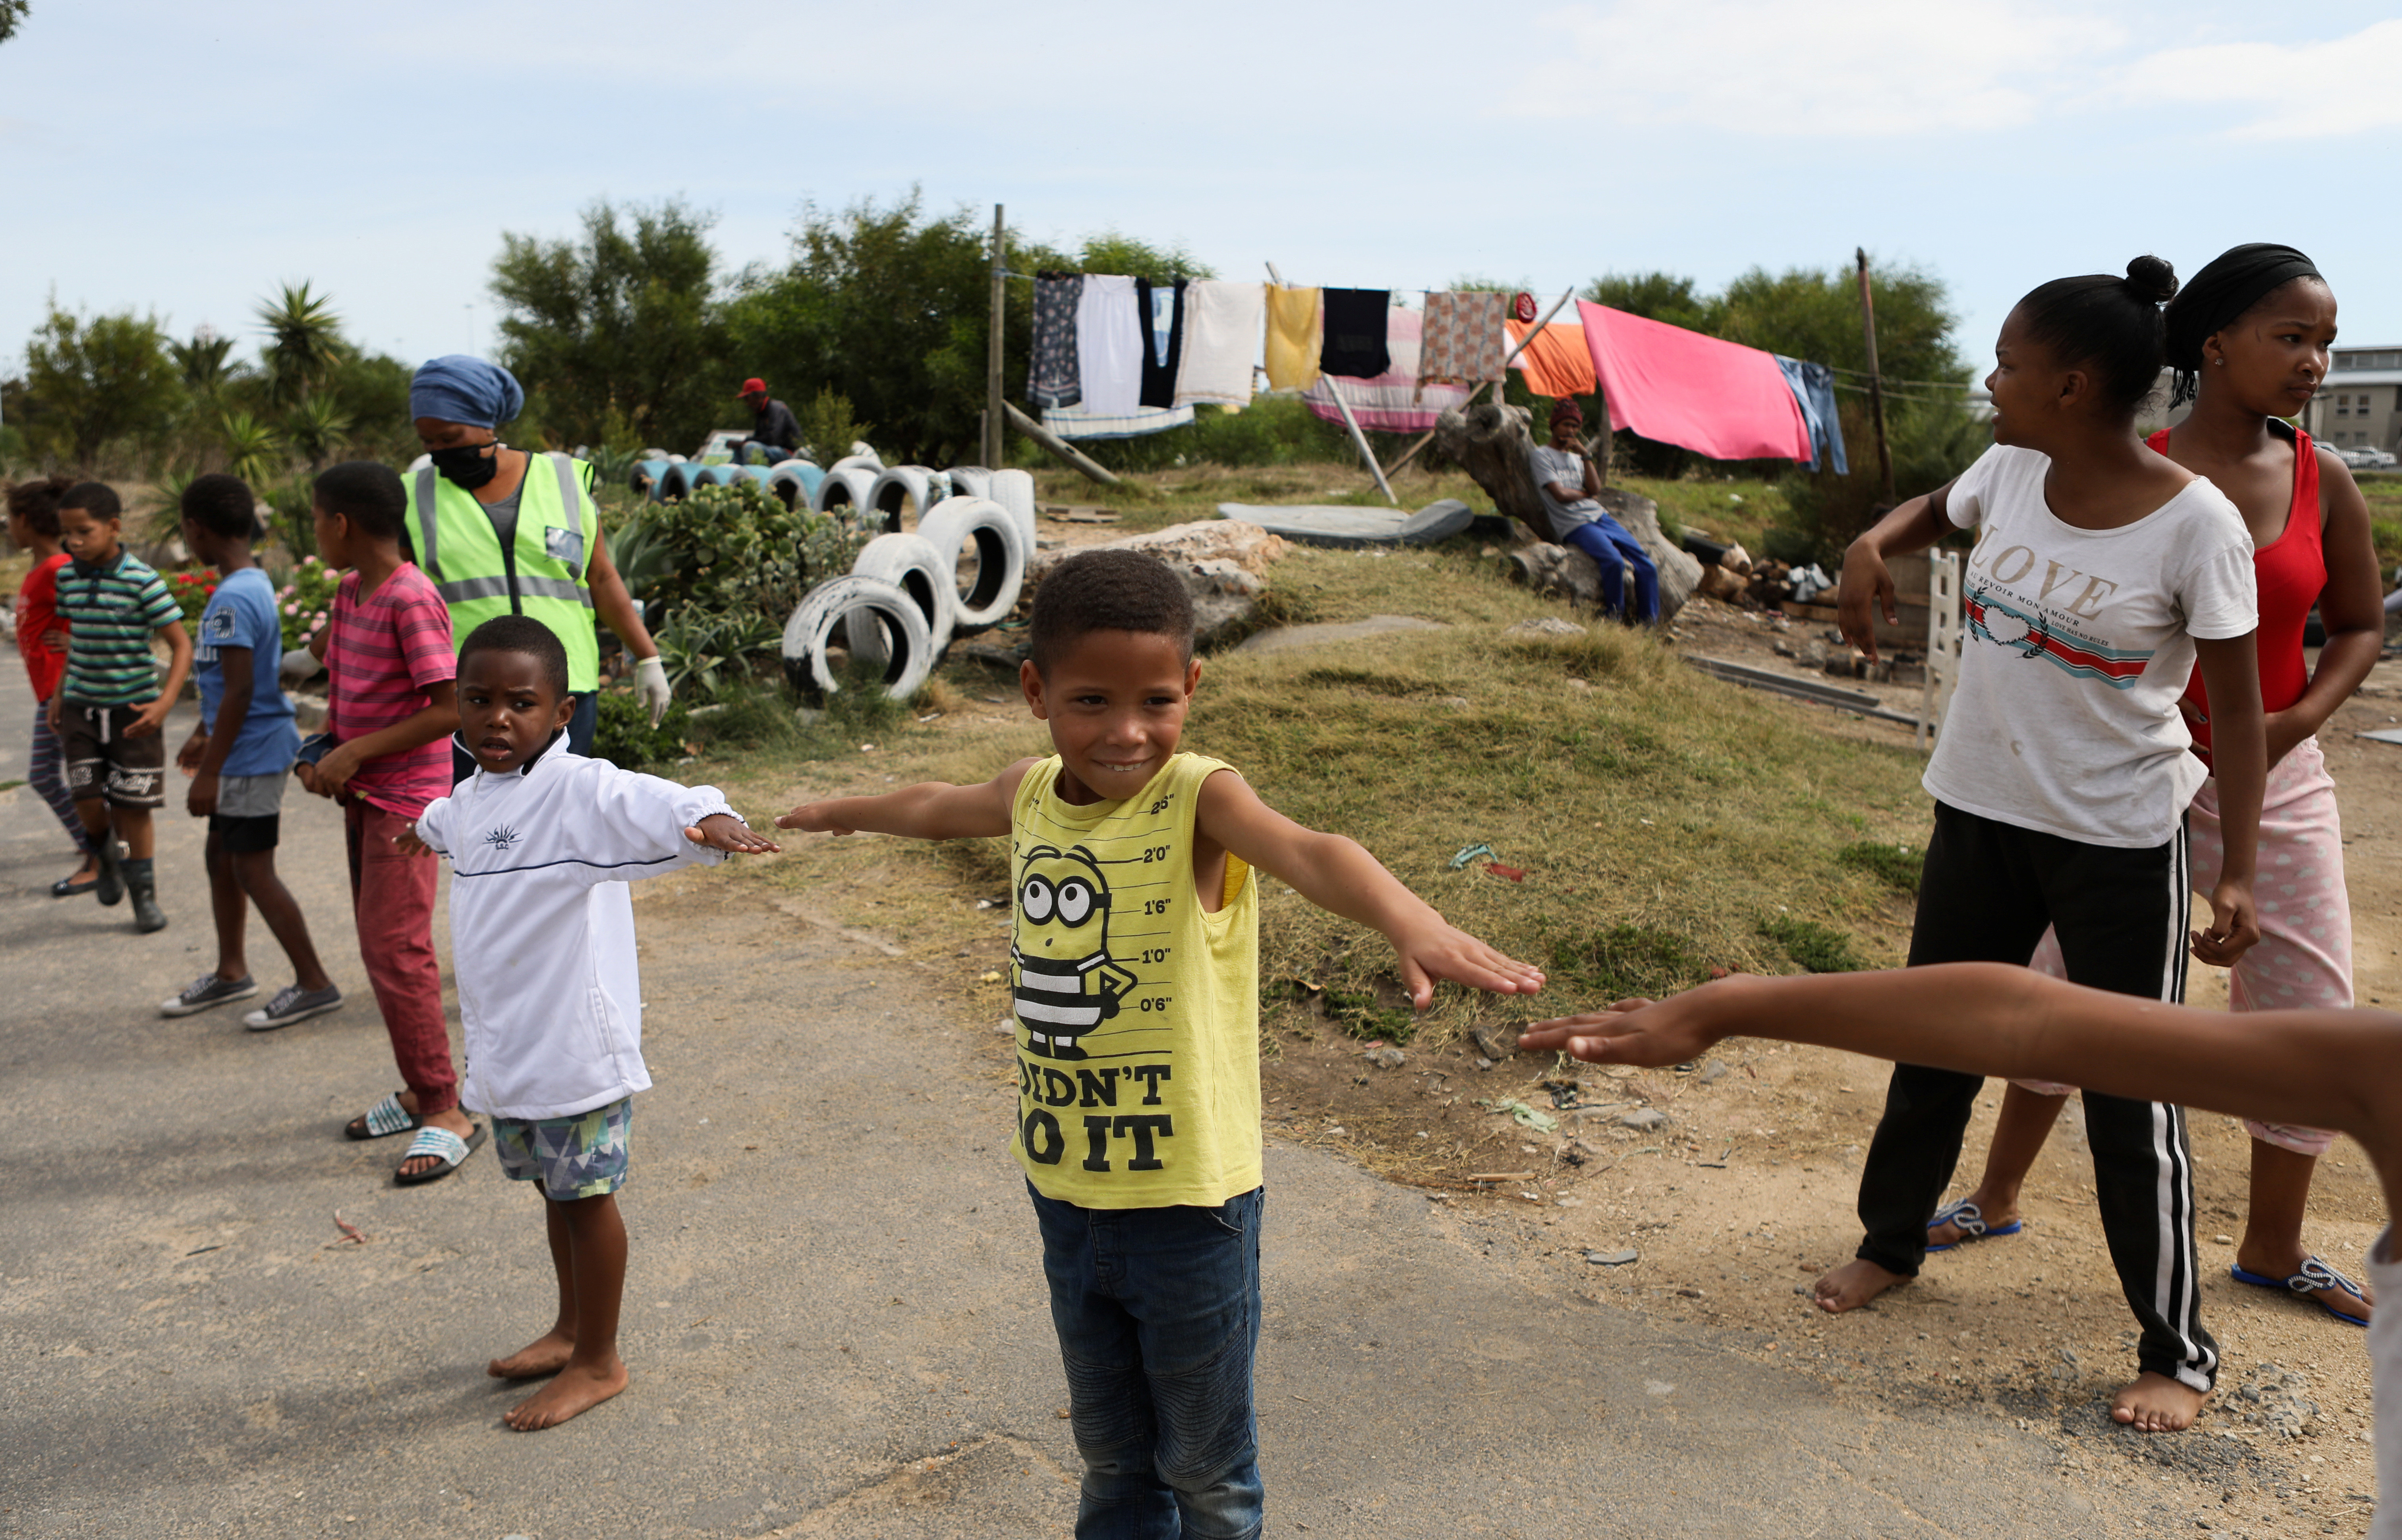 Children practice social distancing while the spread of the coronavirus disease (COVID-19) continues, in an informal settlement in Cape Town, South Africa, April 17, 2020. REUTERS/Sumaya Hisham - RC2F6G9EB0G8